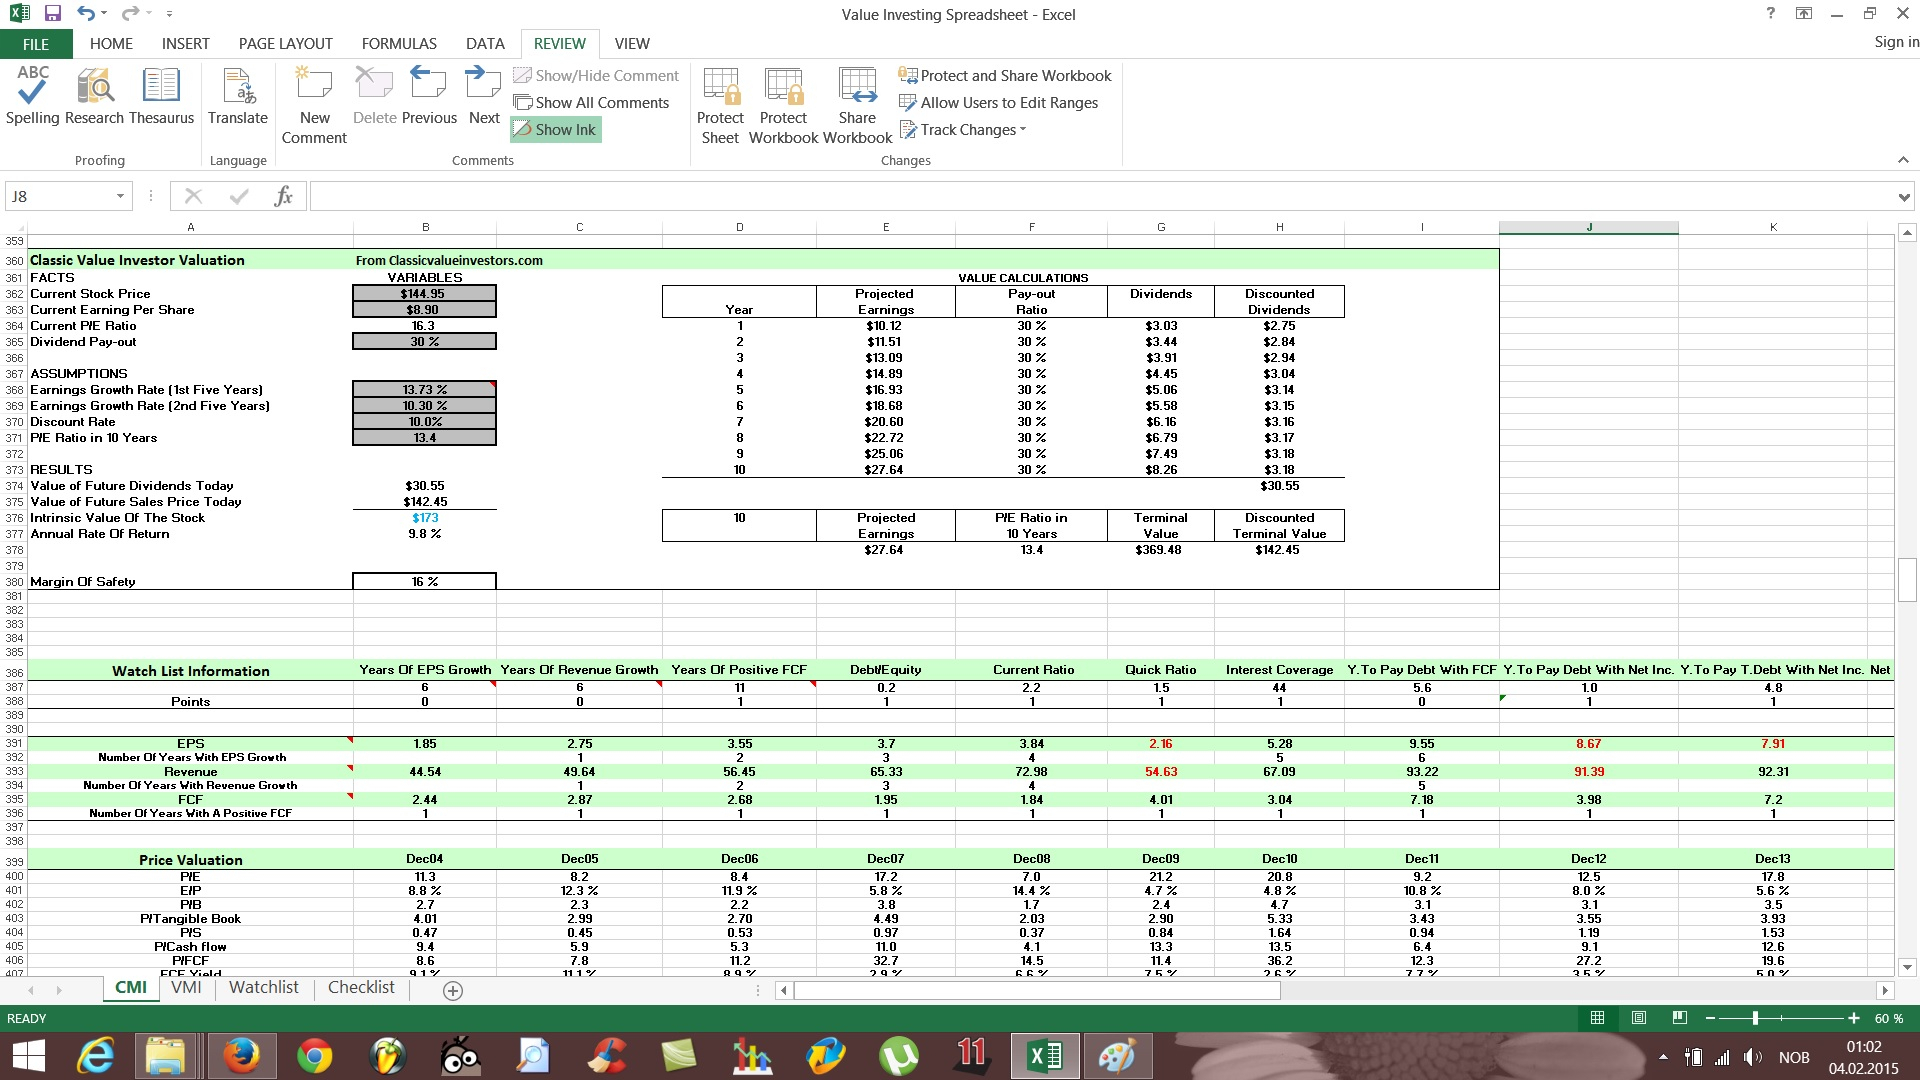 Rule 1 Investing Excel Spreadsheet Intended For Free Value Investing Stock Spreadsheet